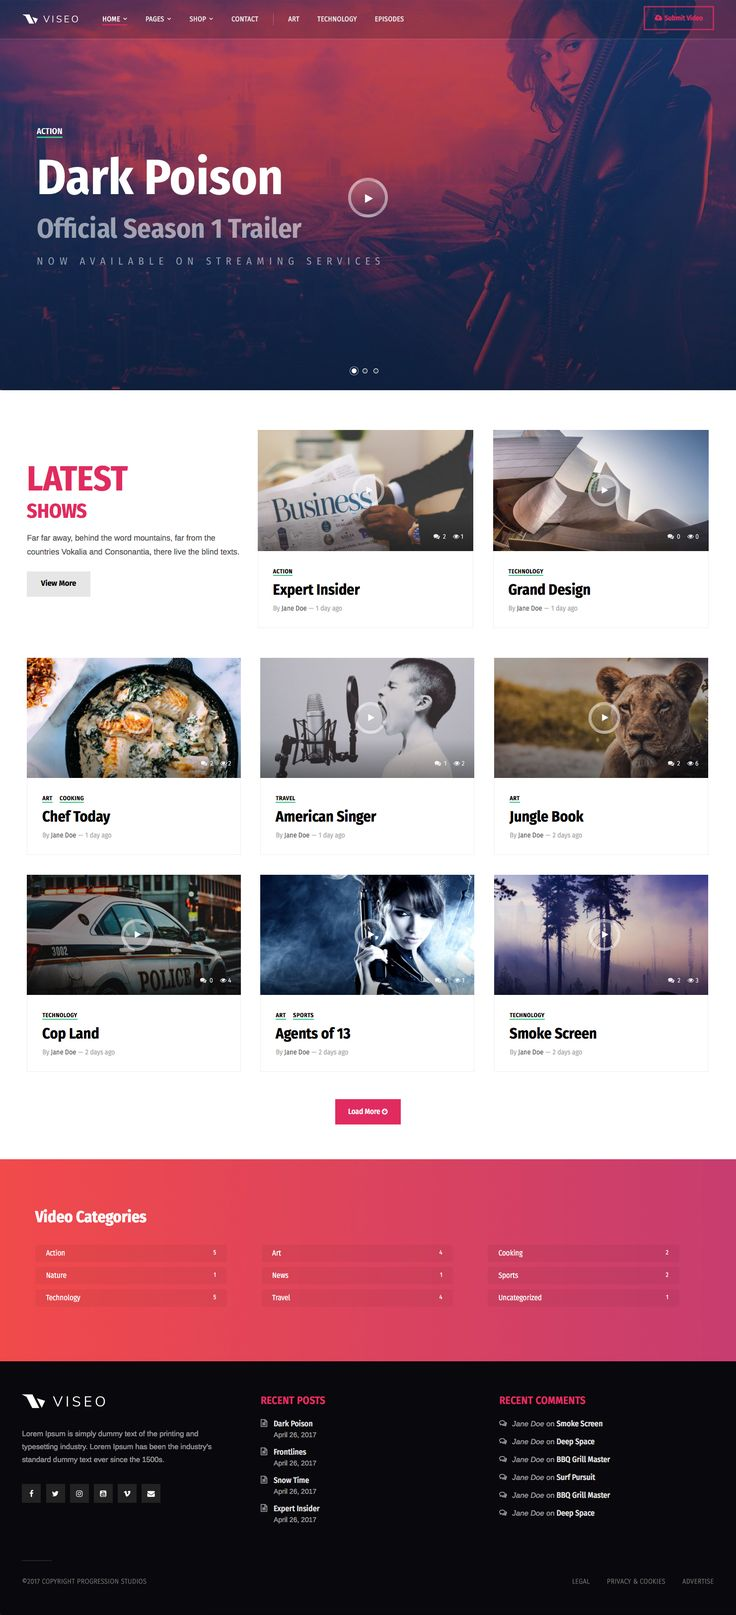 Ad: Viseo - News, Video, & Podcast Theme by ProgressionStudios | ThemeForest 59$